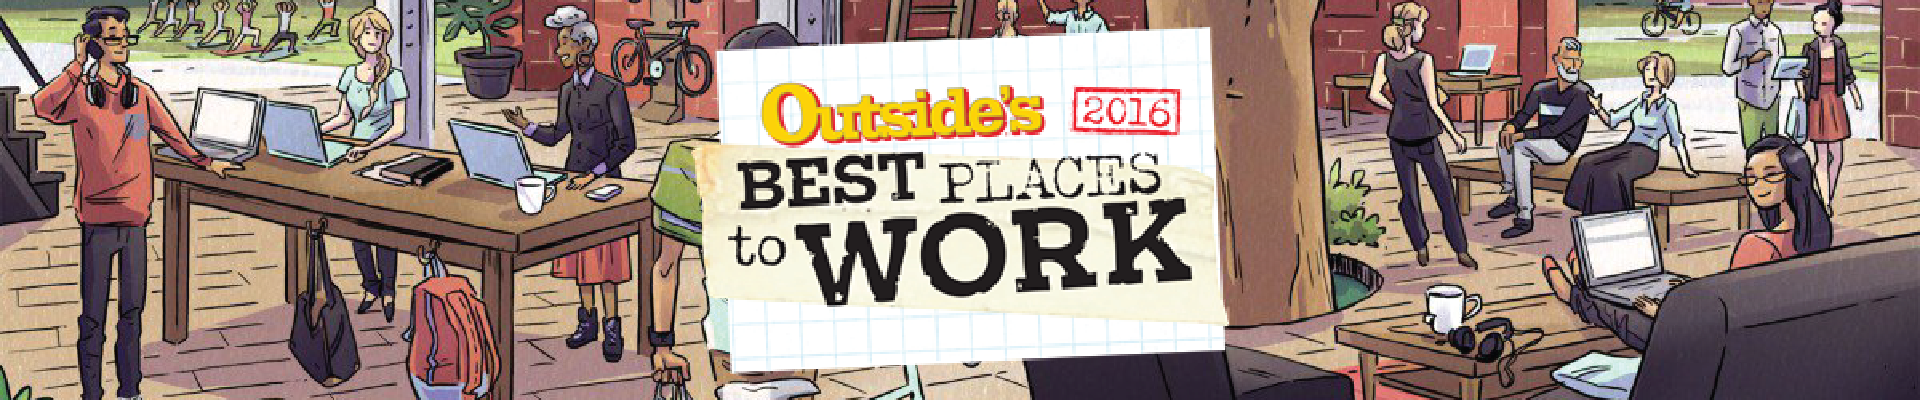 Outside Best Place to Work 2016